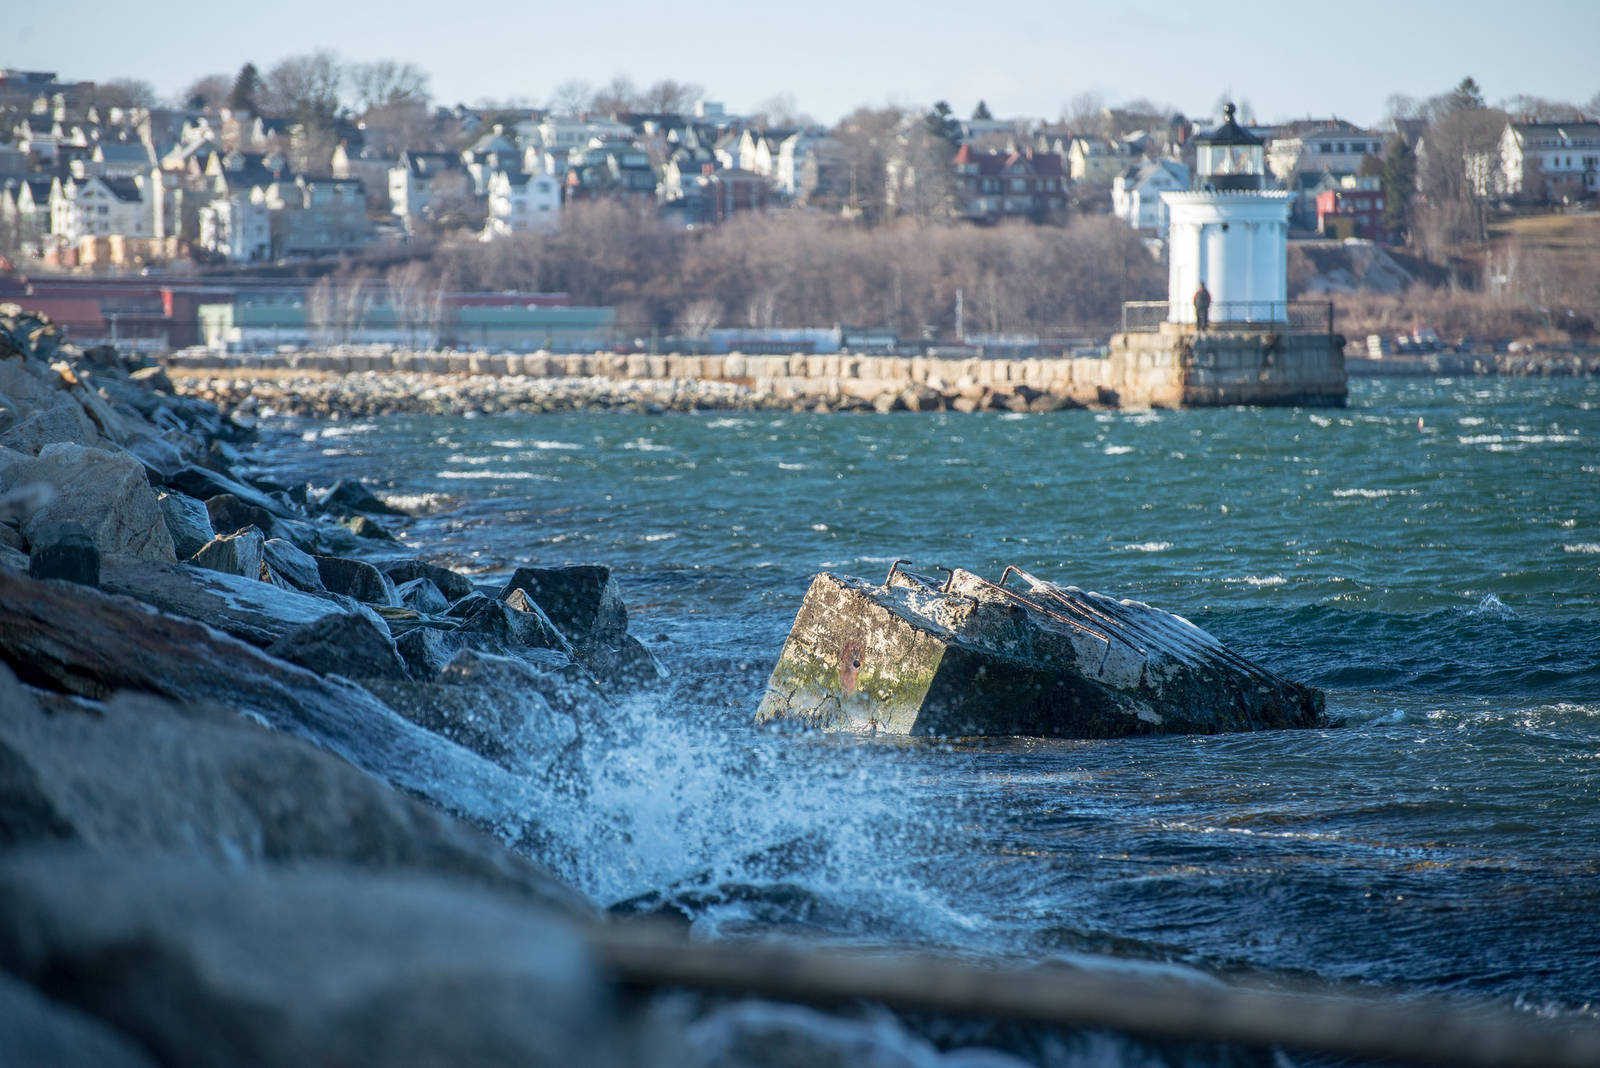 The city of South Portland, Maine has spent five years fighting to stop a local pipeline company from bringing tar sands oil through the city and building a pair smokestacks near Bug Light Park. Credit: Corey Templeton via Creative Commons